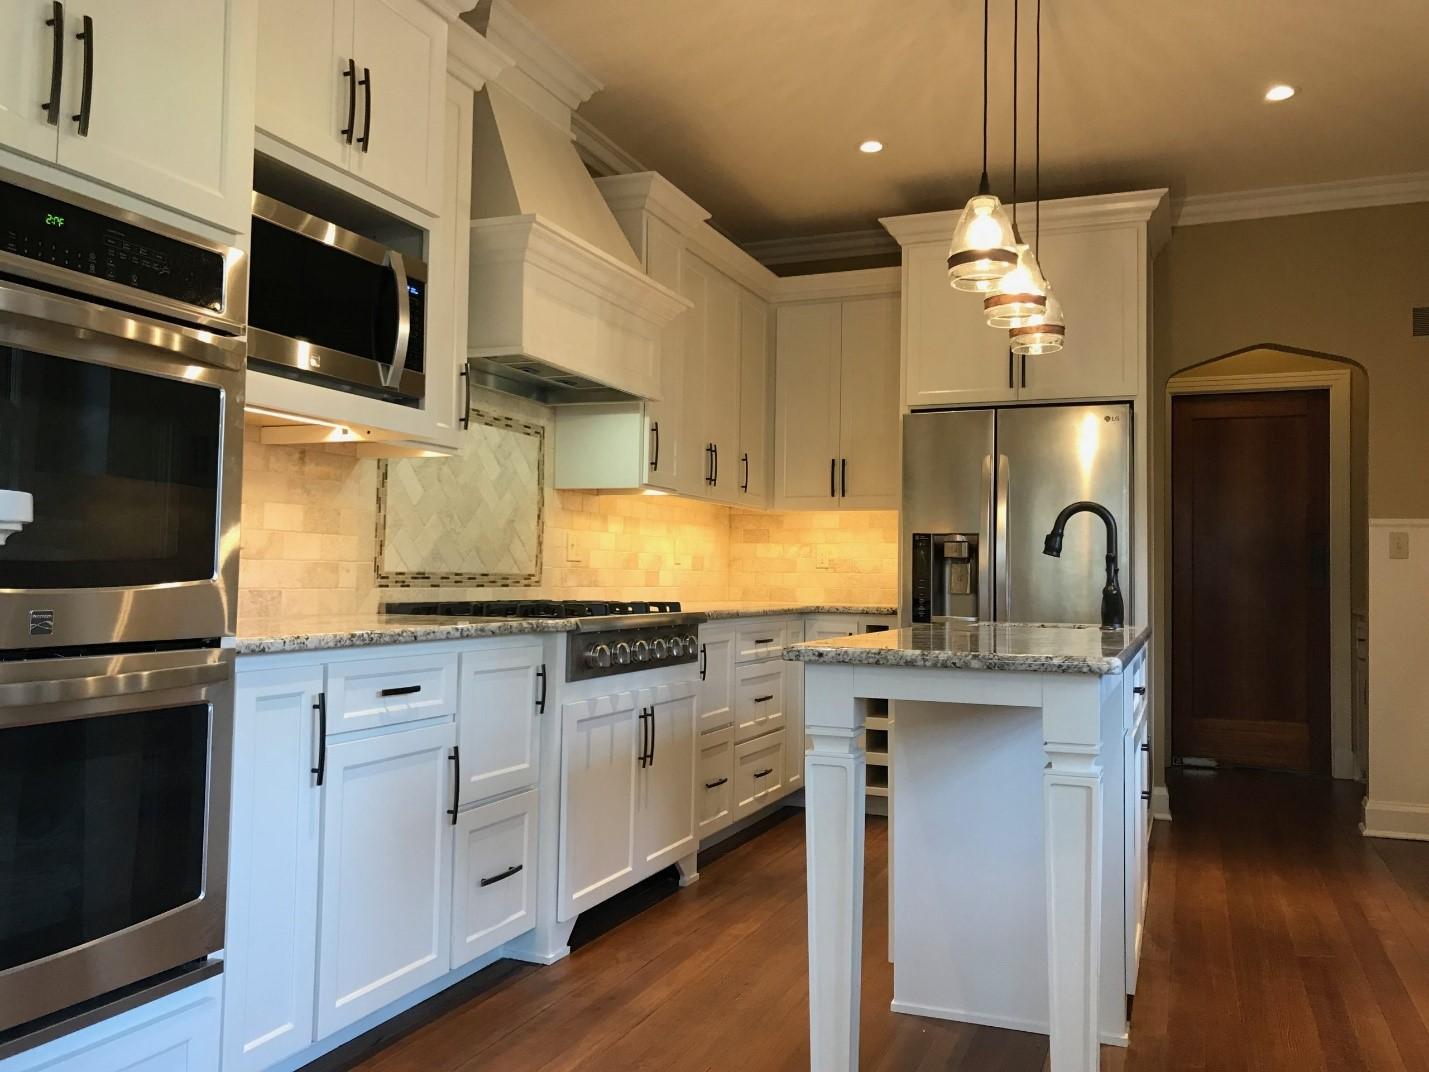 Well Lit Kitchen by Kaylor Electric